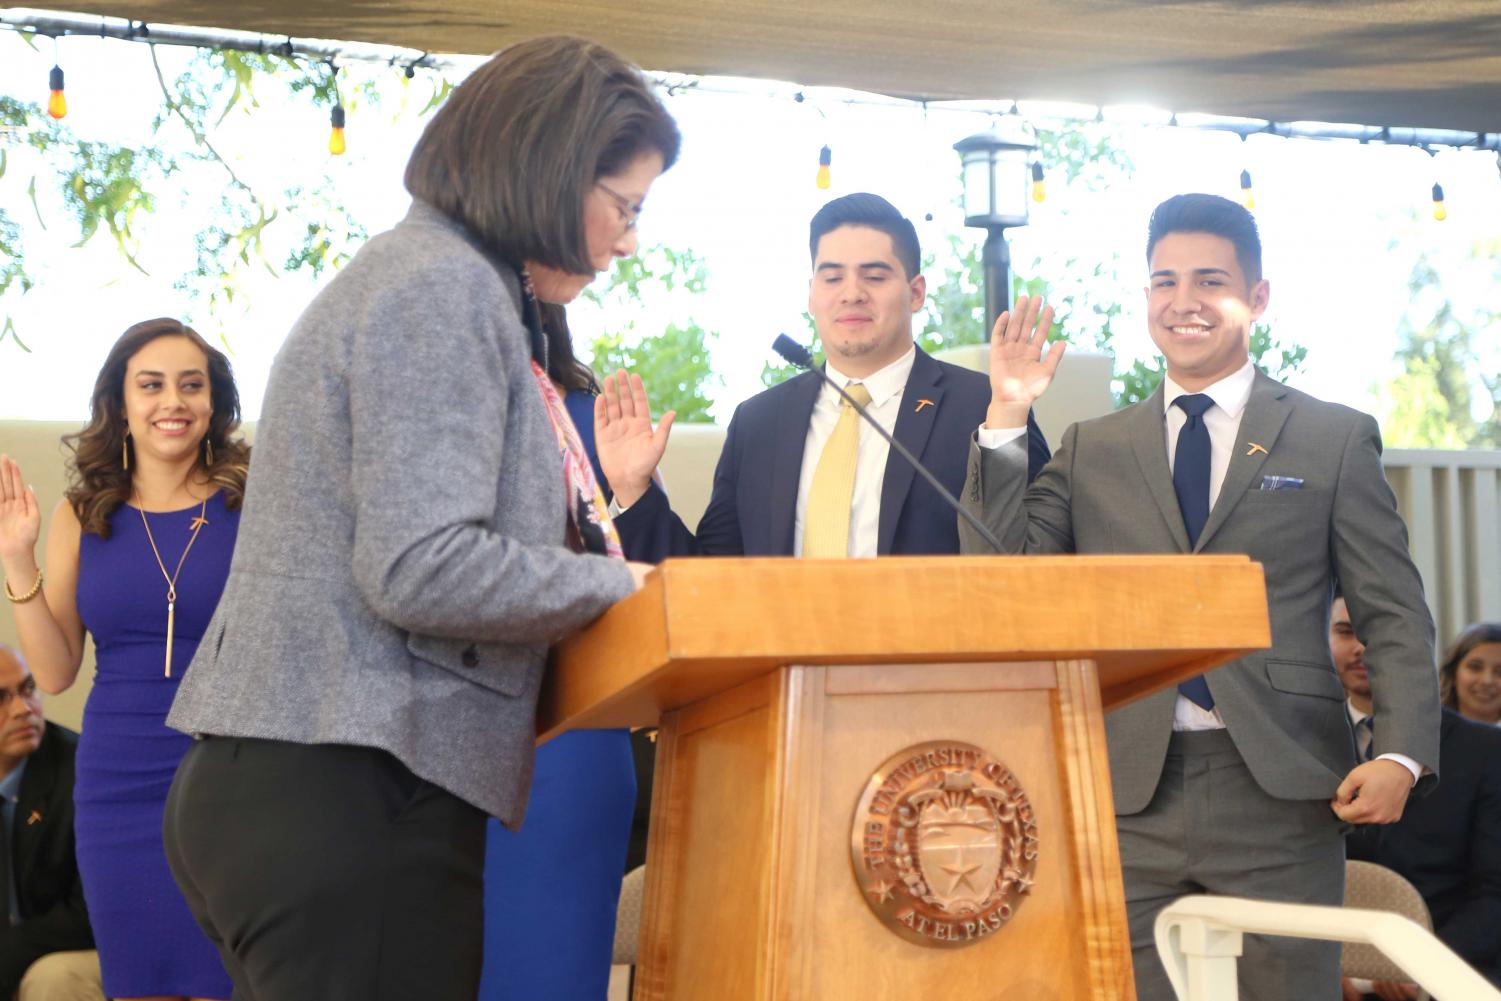 SGA President Cristian Botello, Vice President of Internal Affairs Carlos Chavira, Vice President of External Affairs Jaqueline Benavides and Executive Assistant to the President Jessica Martinez were sworn in to office on Wednesday, May 23 at the Hoover House.